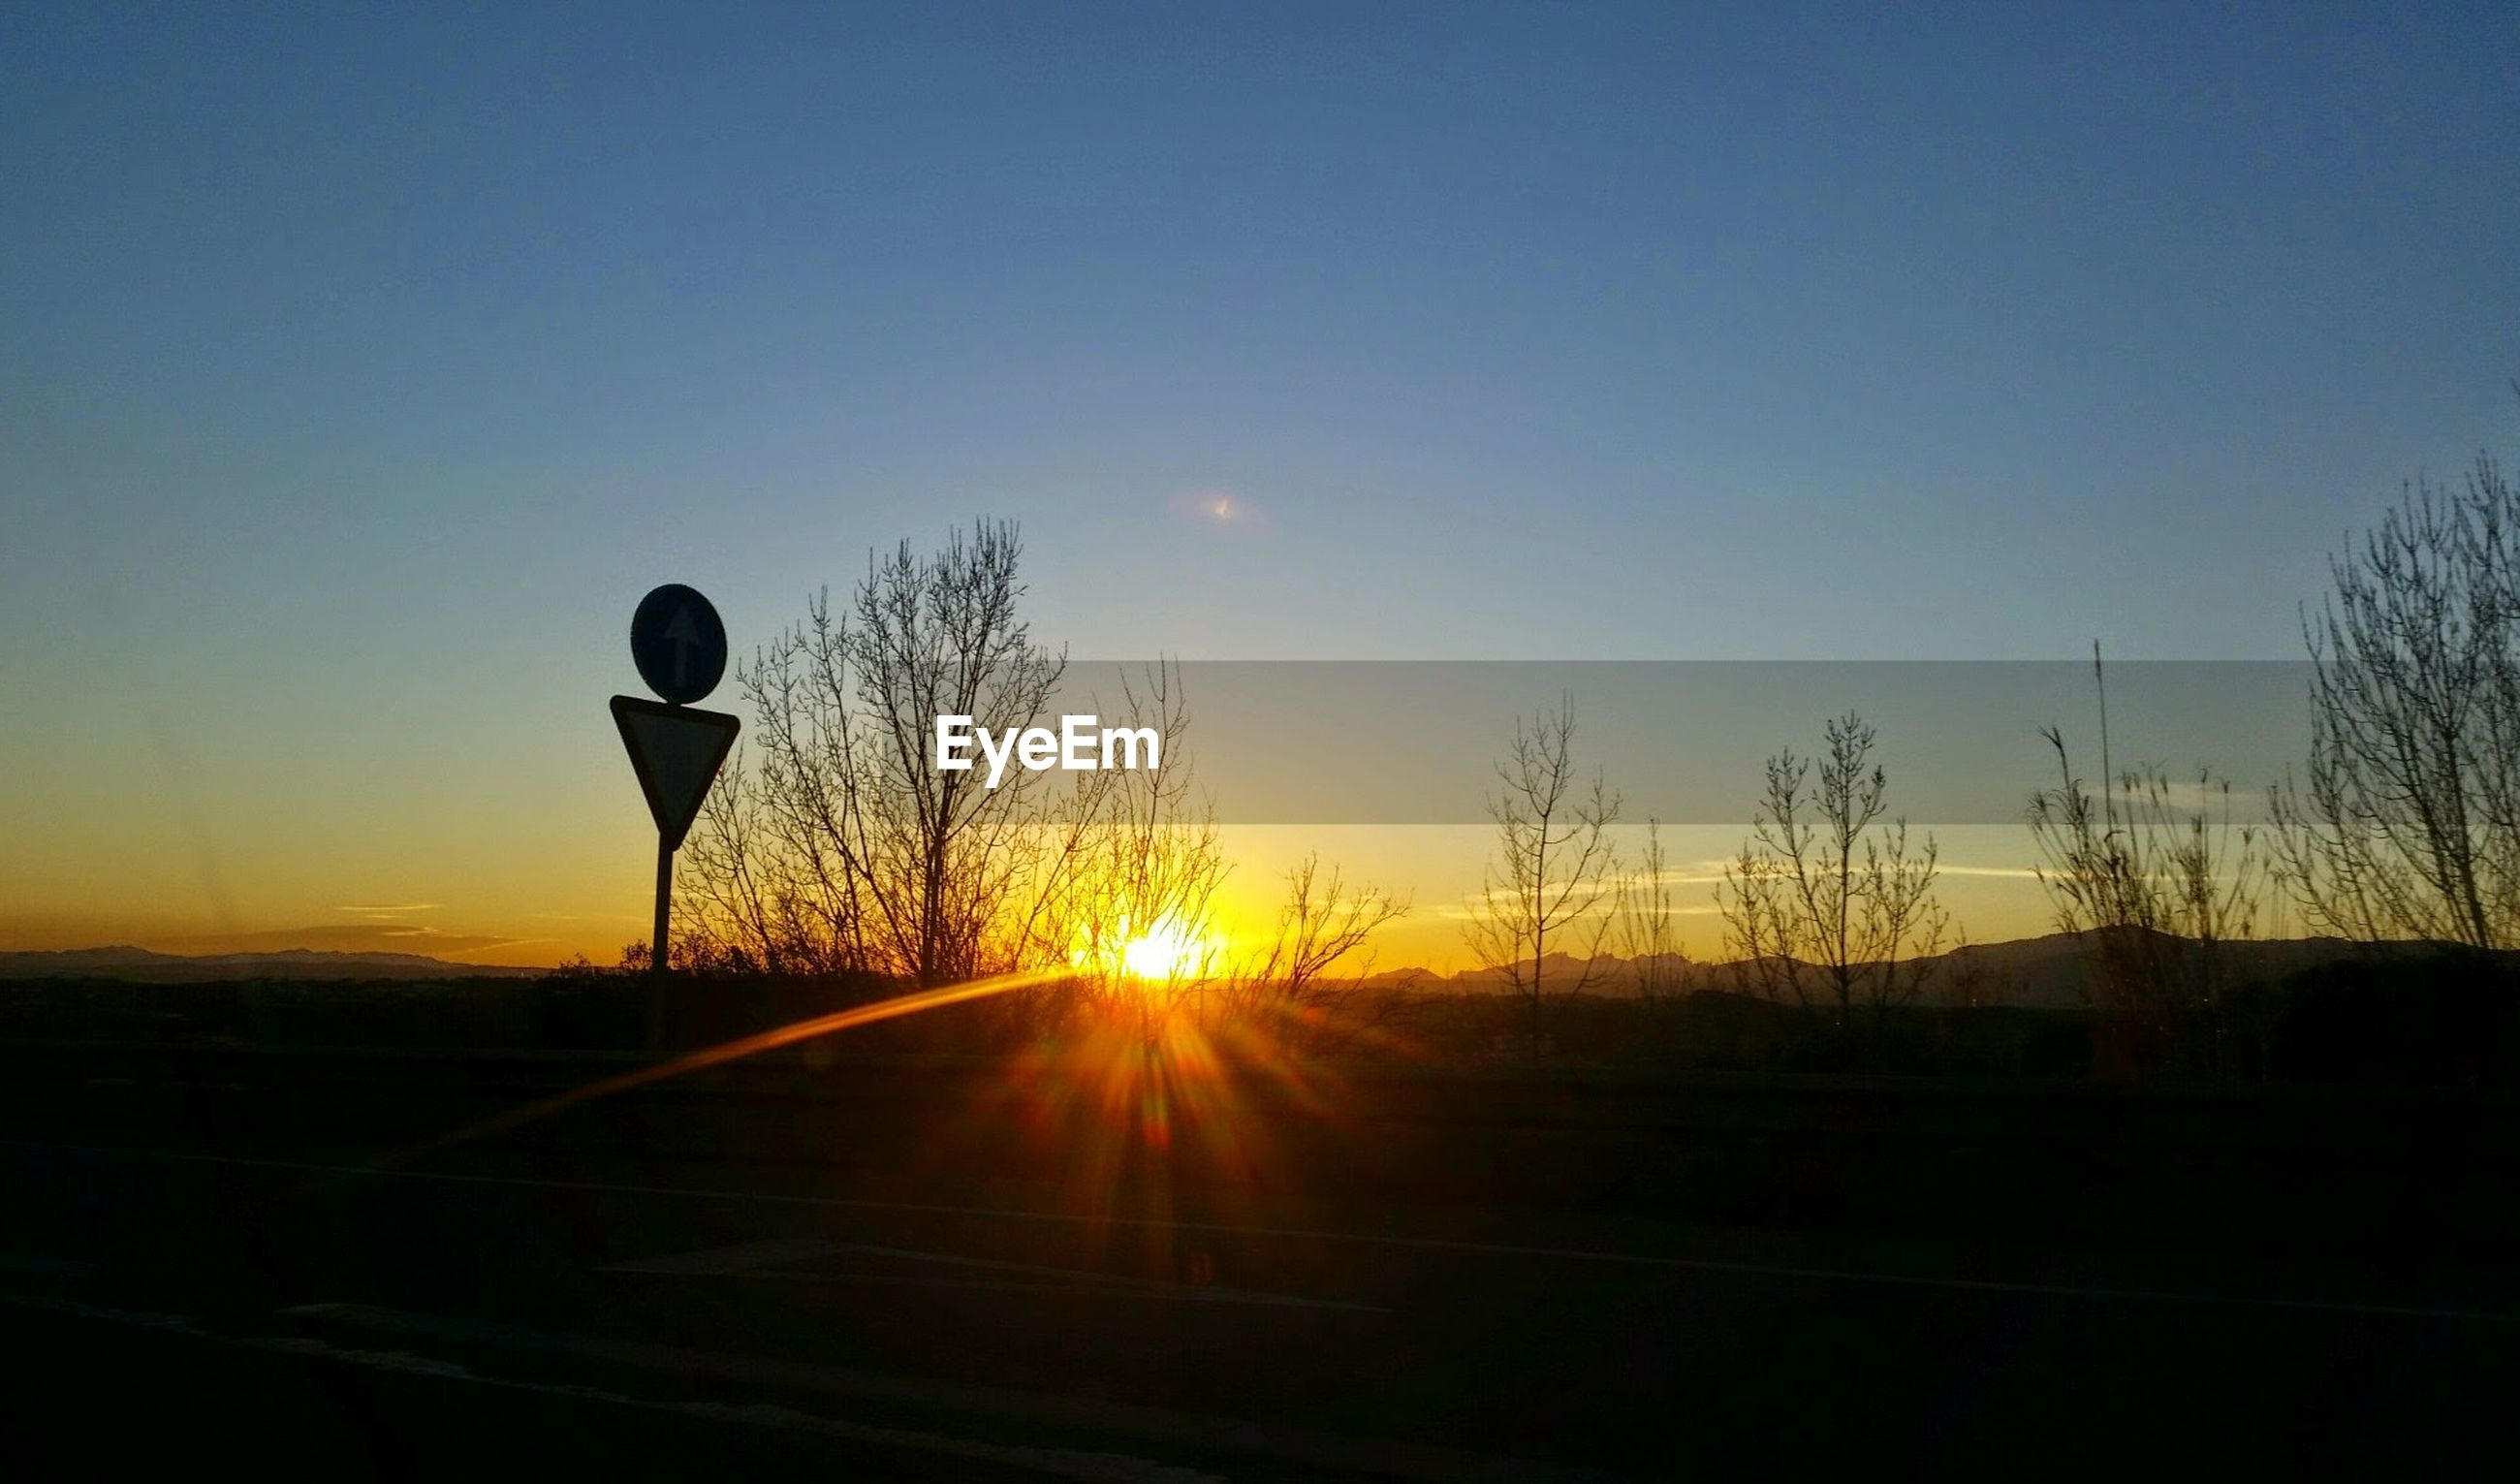 SILHOUETTE OF CAR ON ROAD AGAINST SKY DURING SUNSET